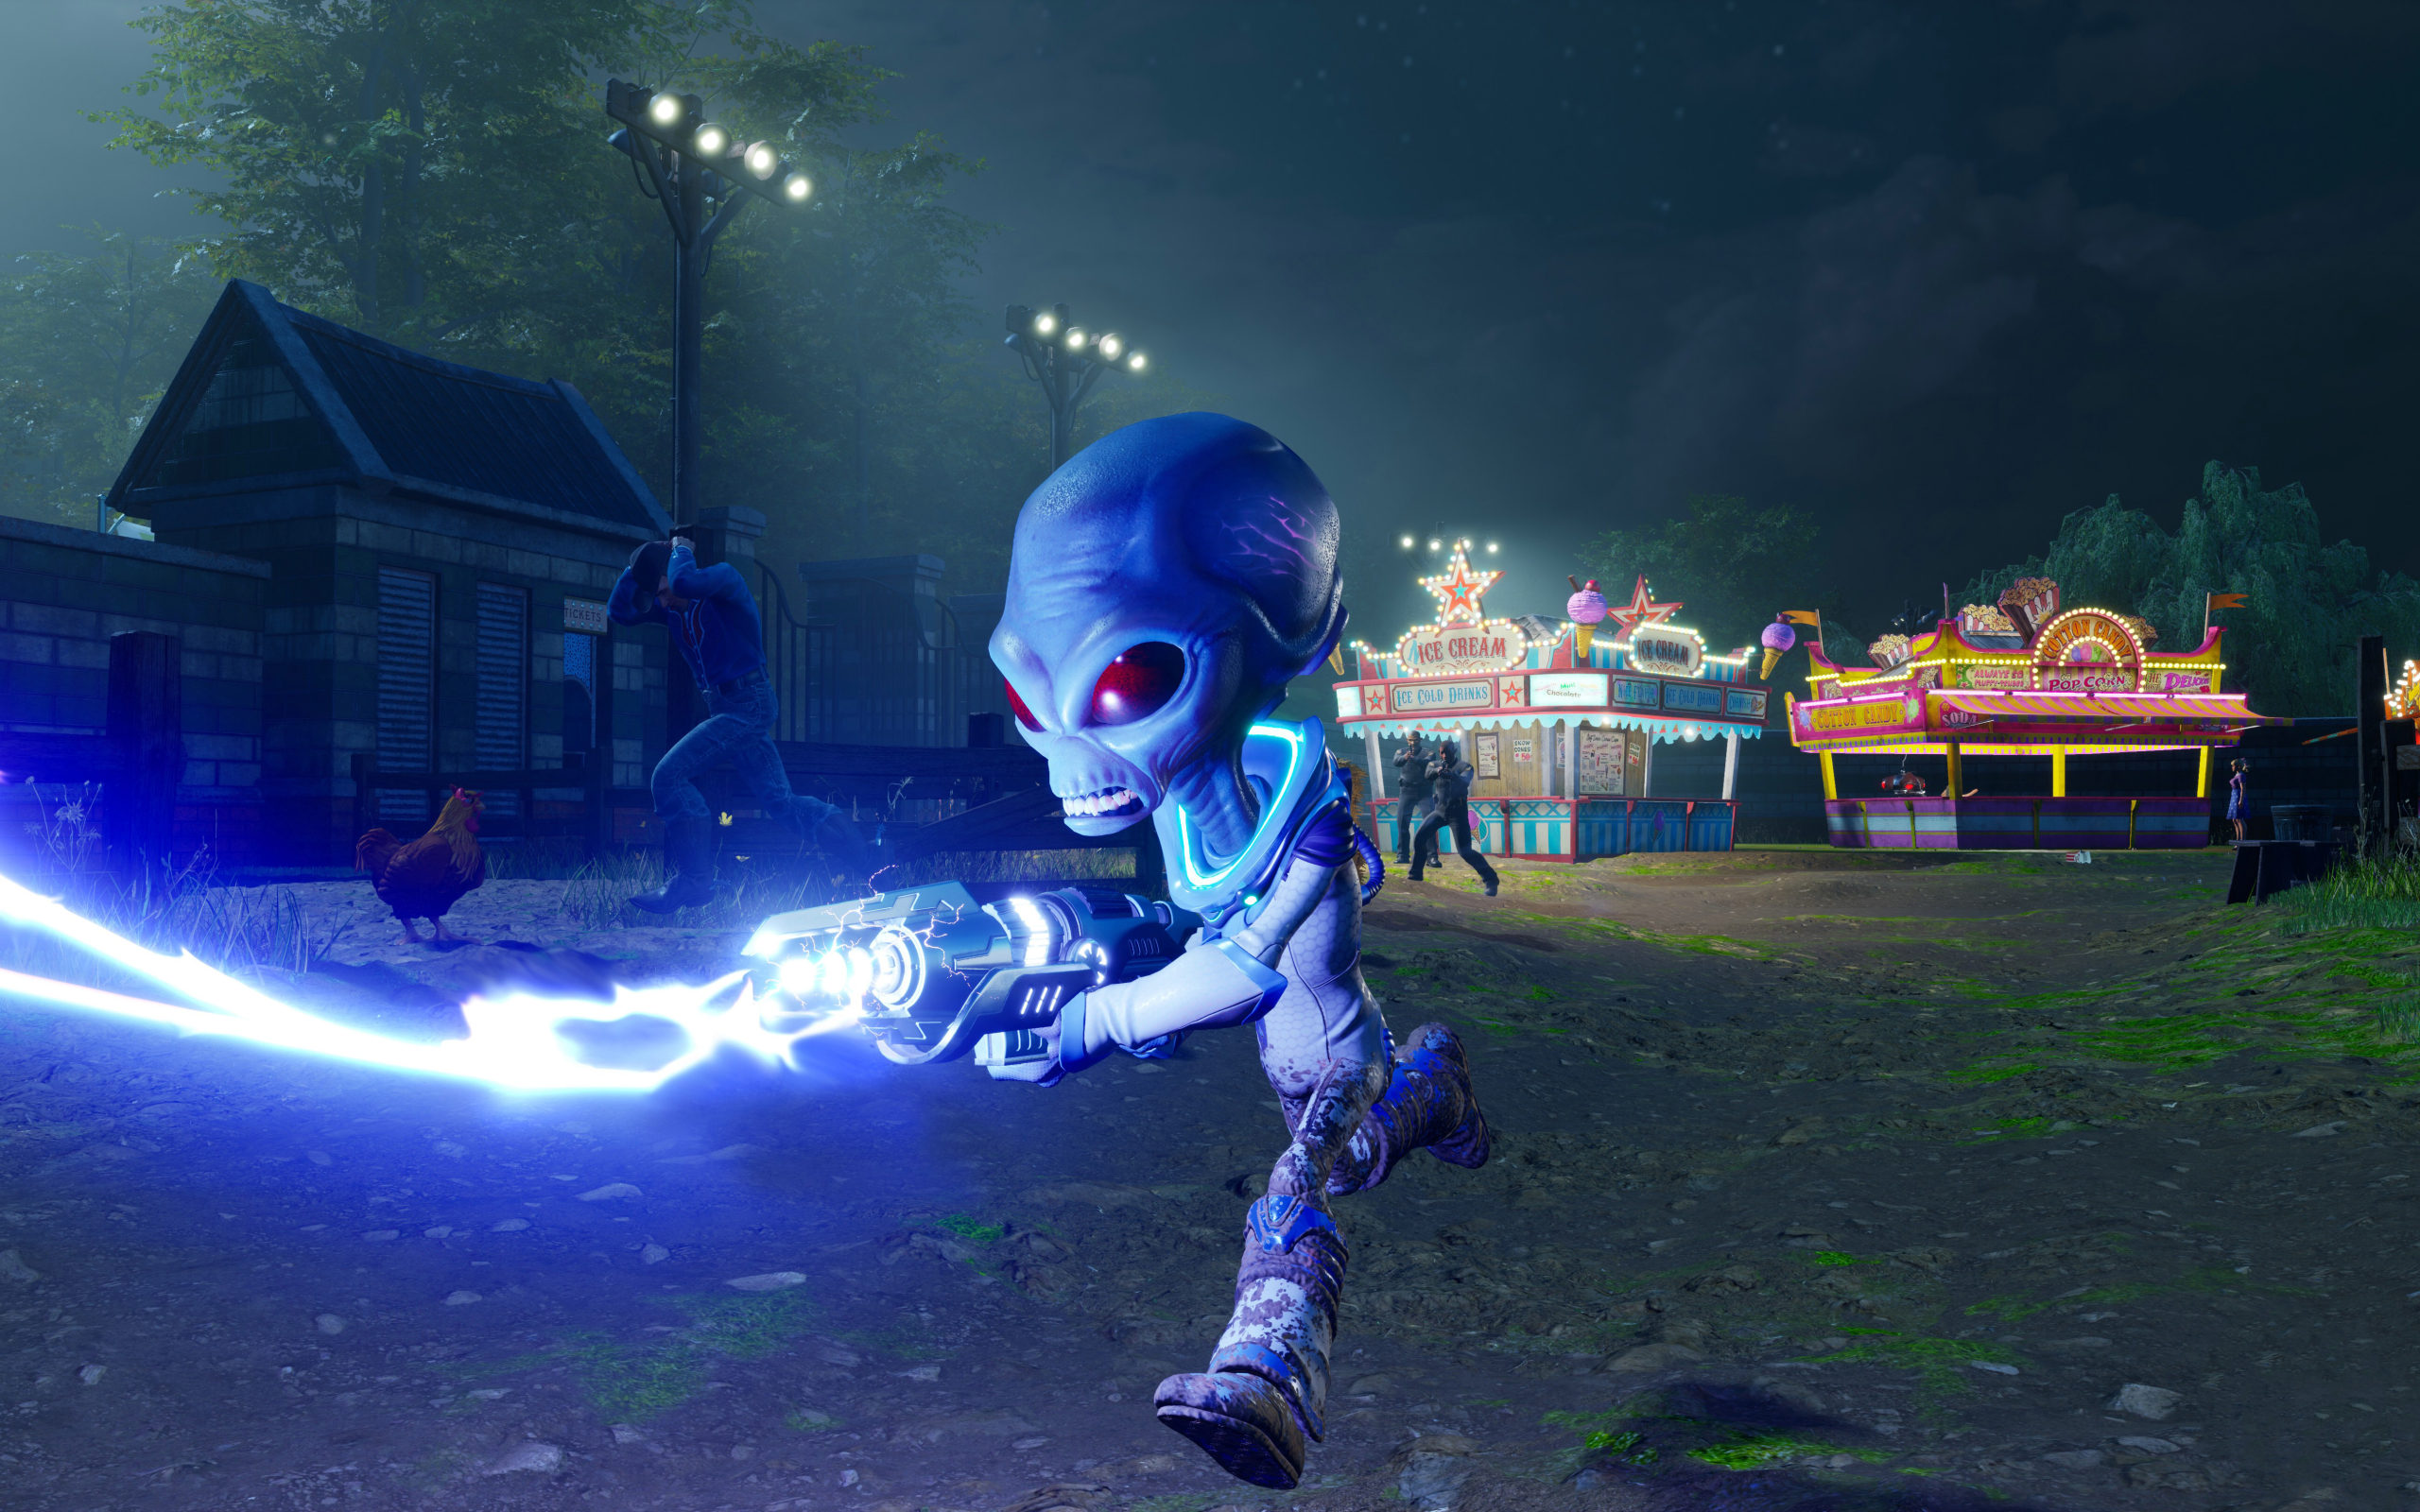 Destroy All Humans 2020 Wallpaper in 2560x1600 Resolution